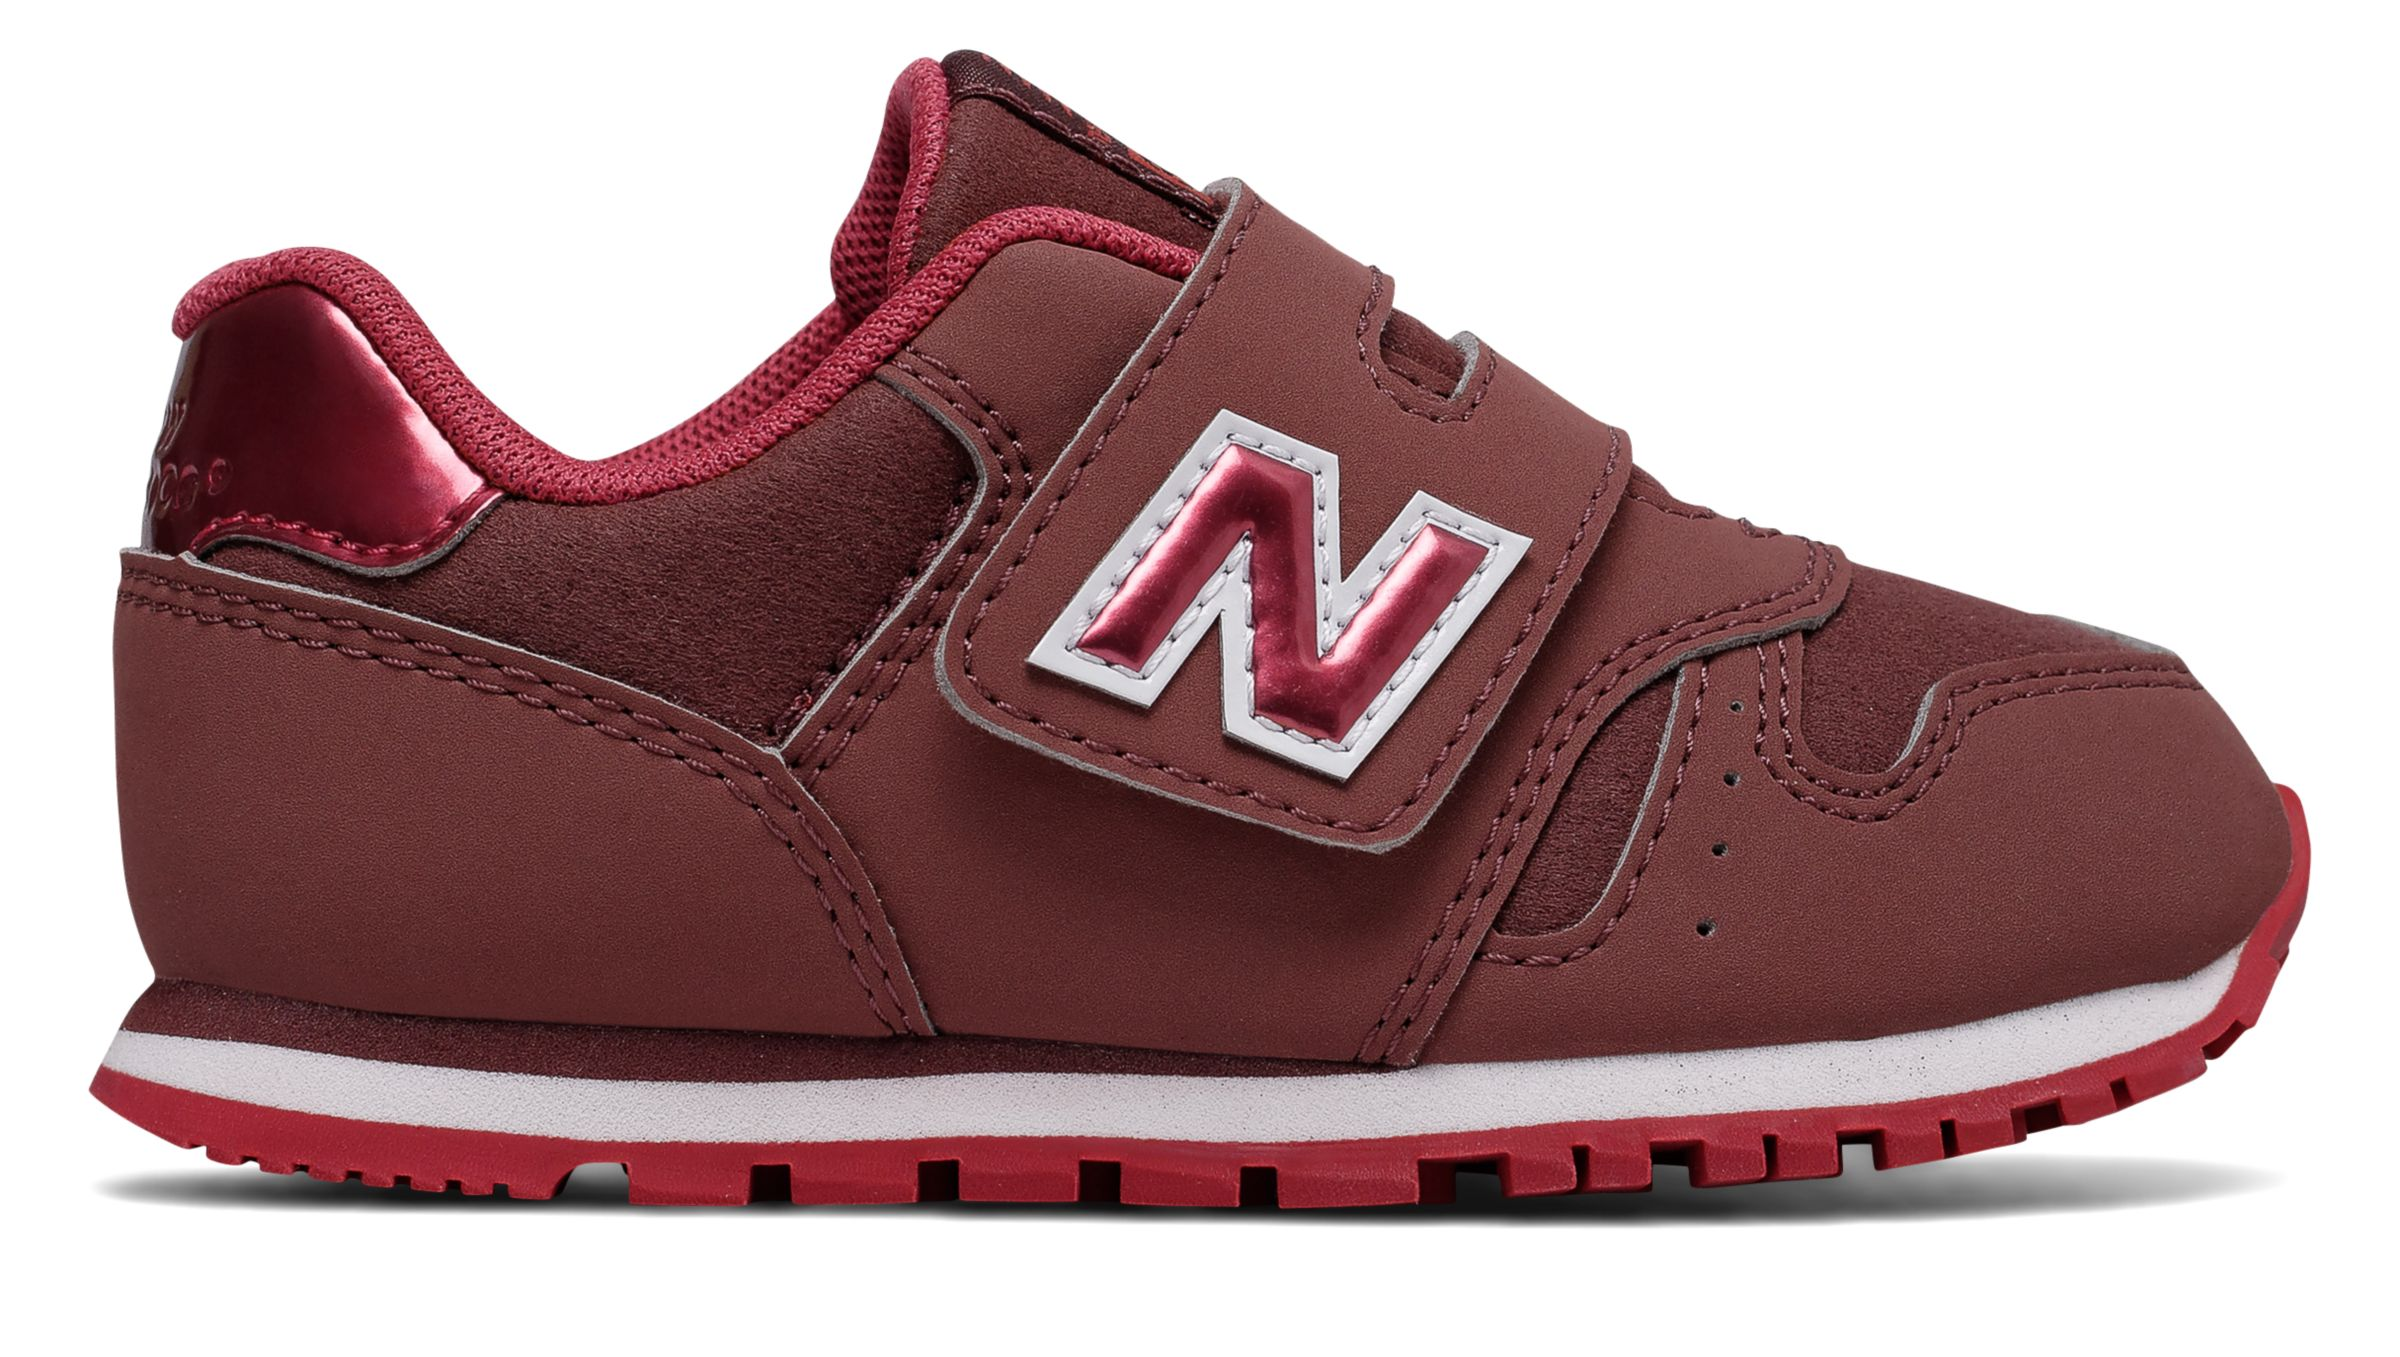 NB 373 New Balance, Dark Pink with Red